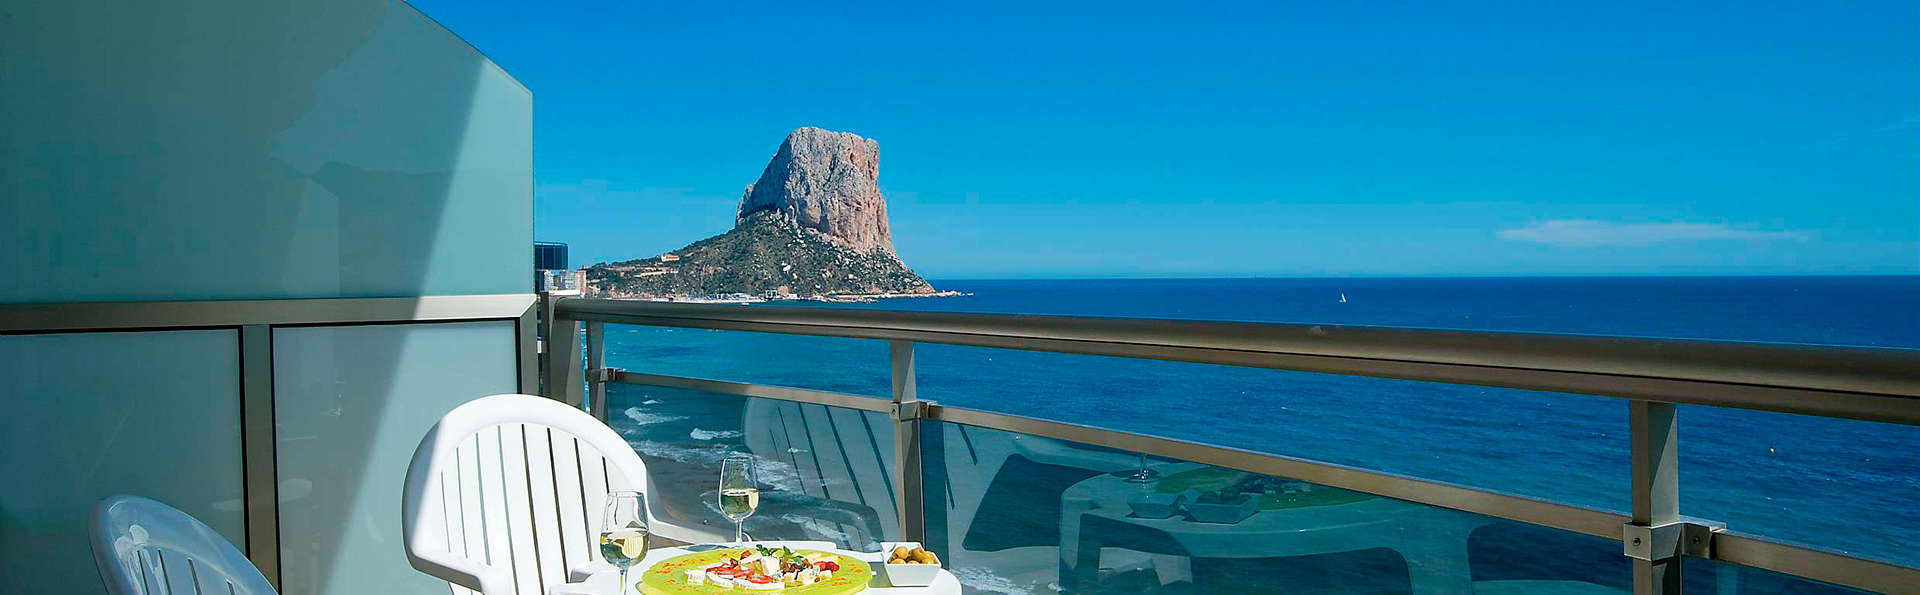 Hotel Bahía Calpe by Pierre & Vacances - EDIT_balconyroom.jpg